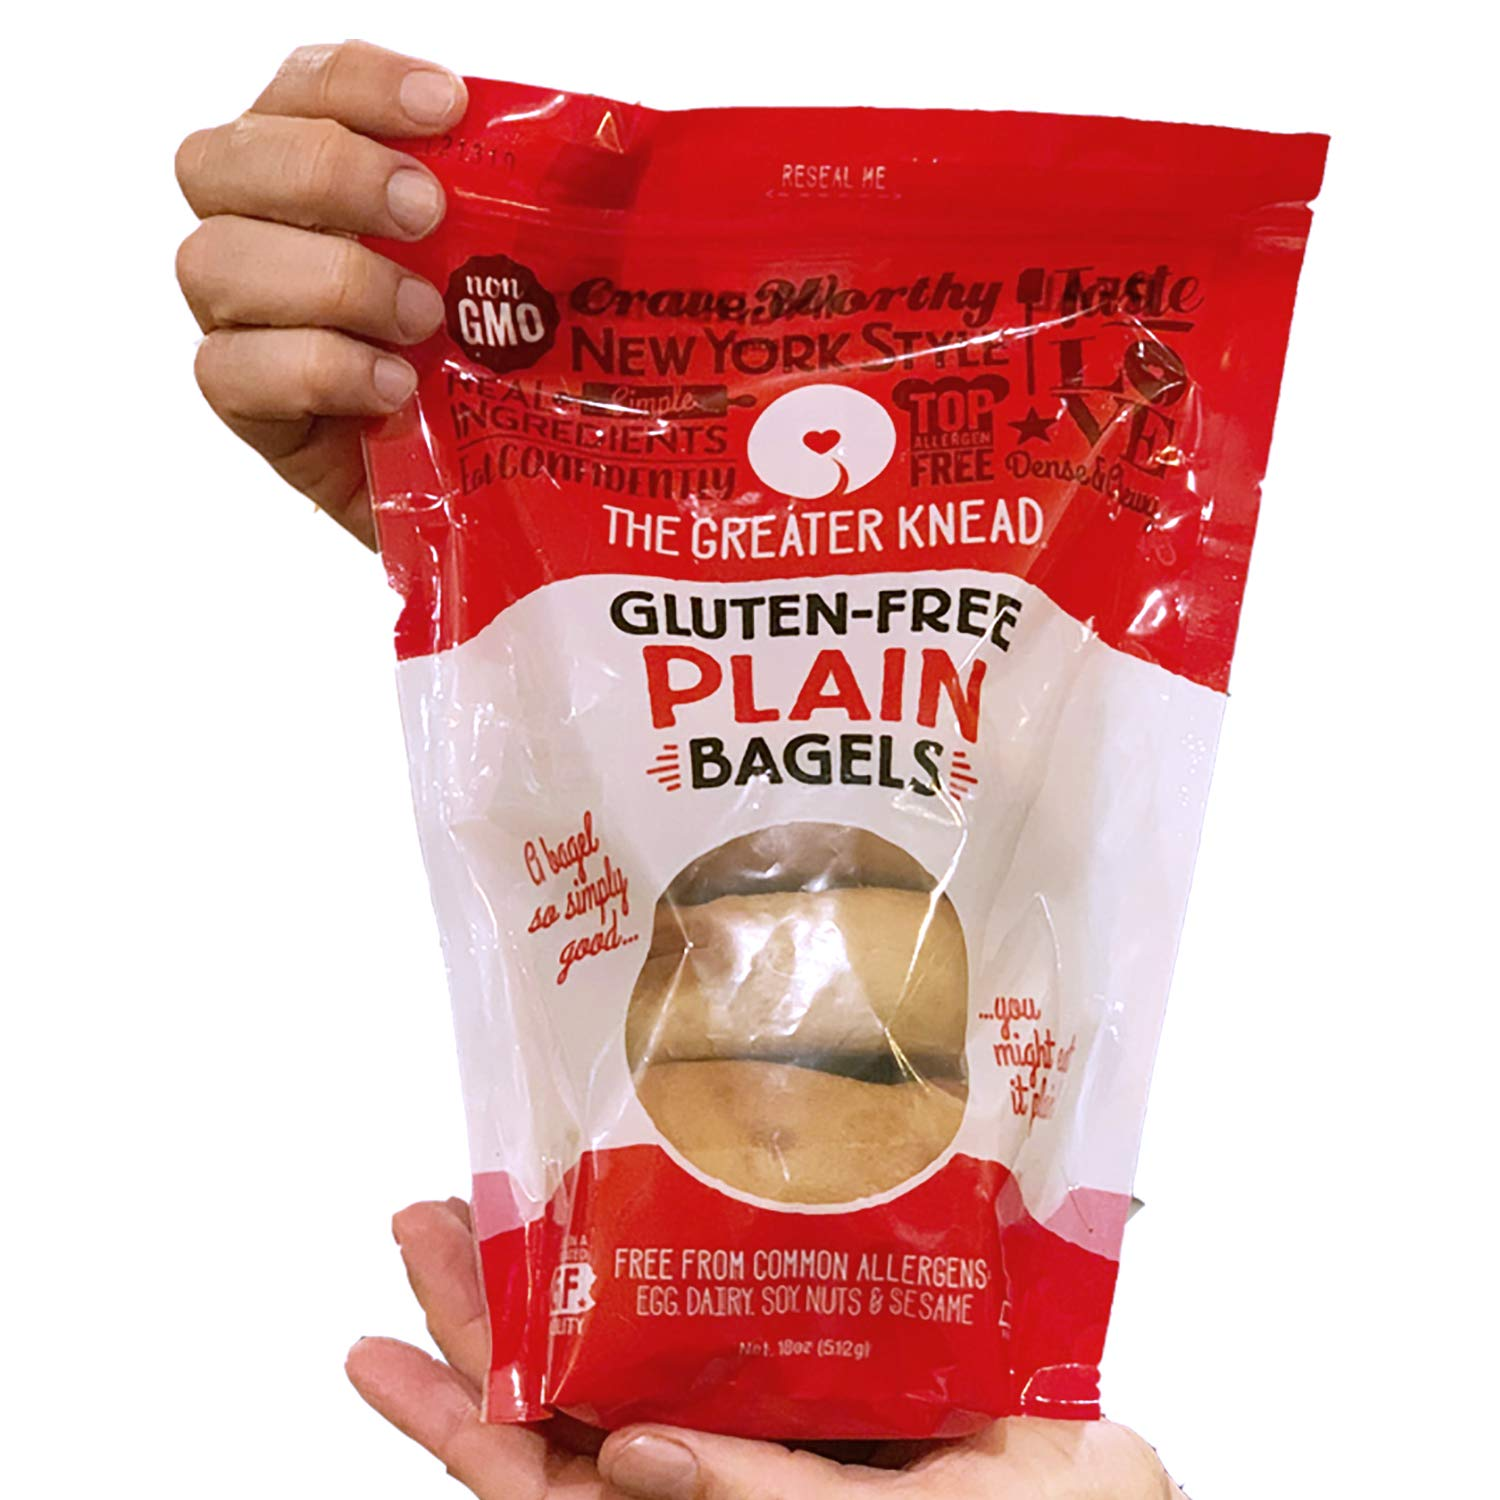 Greater Knead Gluten Free Bagel - Cinnamon Raisin - Vegan, non-GMO, Free of Wheat, Nuts, Soy, Peanuts, Tree Nuts (12 bagels) by The Greater Knead (Image #9)